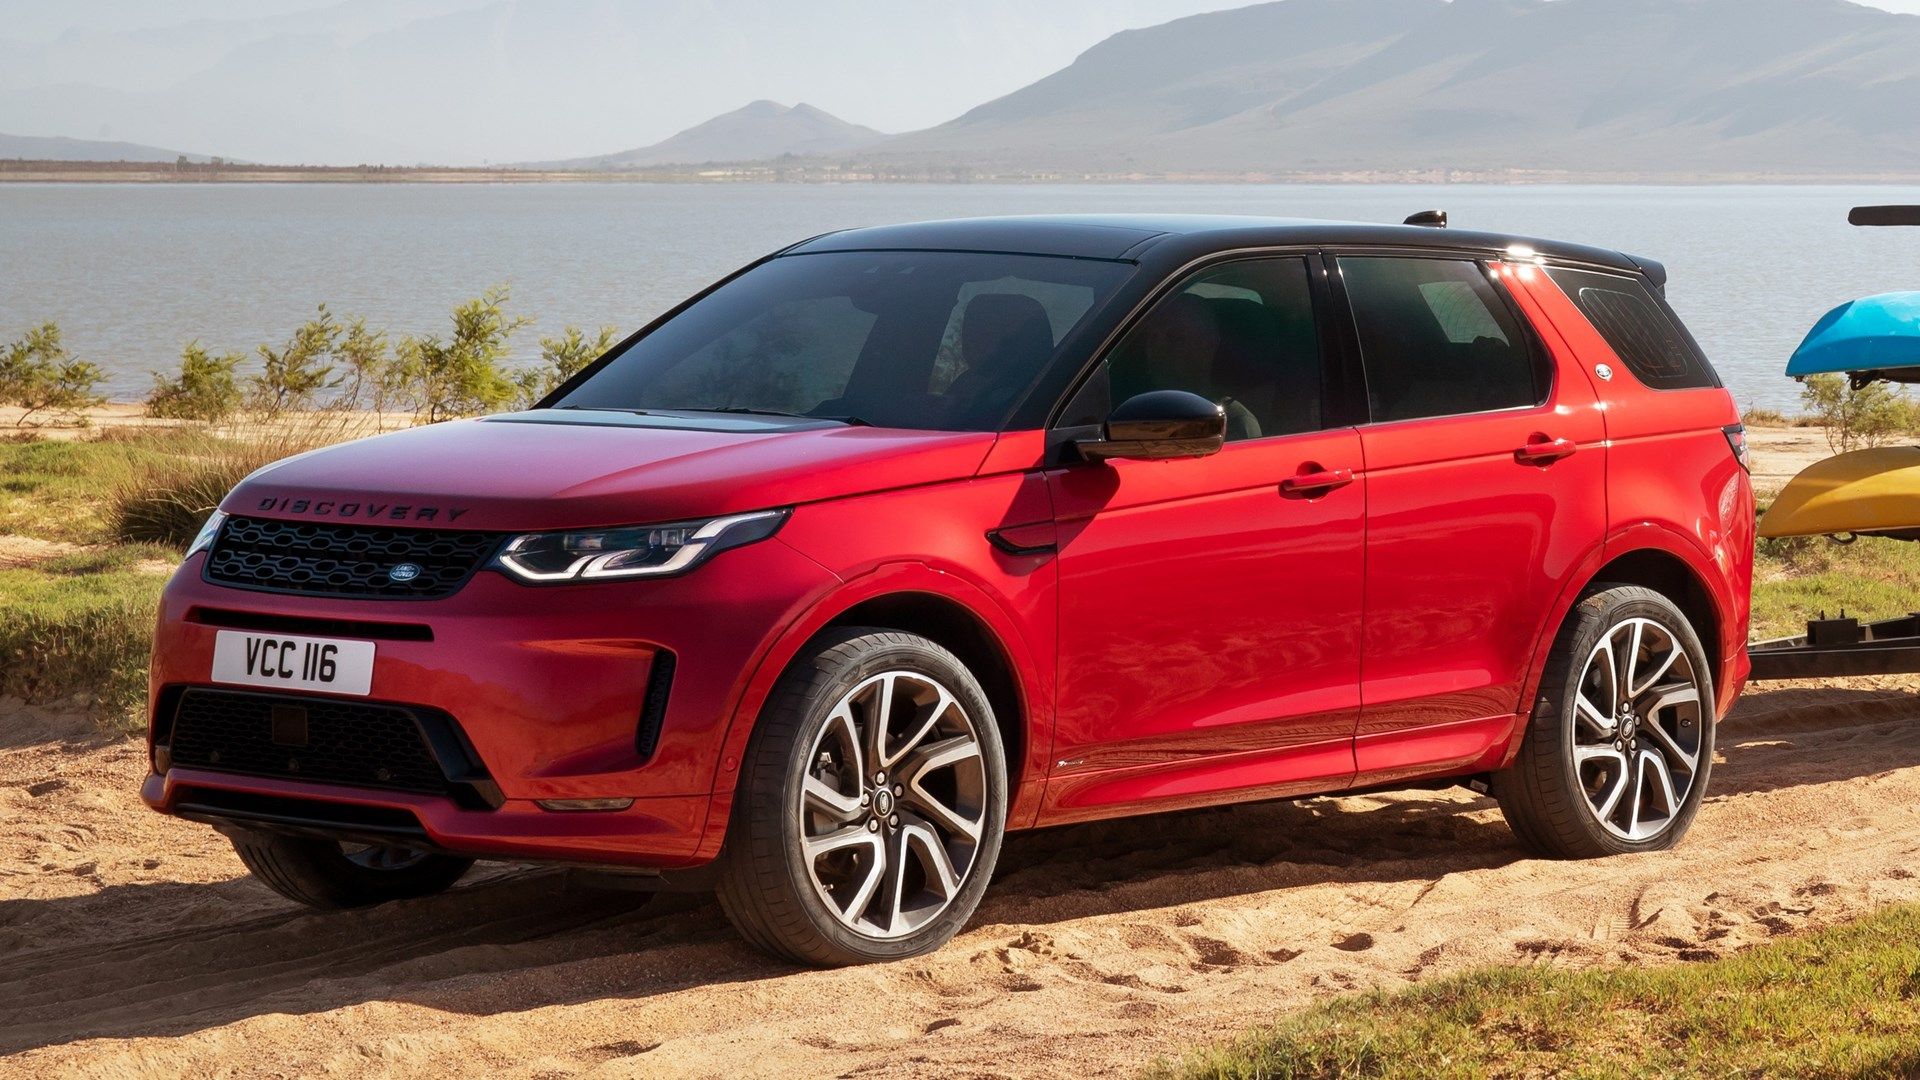 Land Rover Discovery 2020 red phone, desktop wallpapers ...